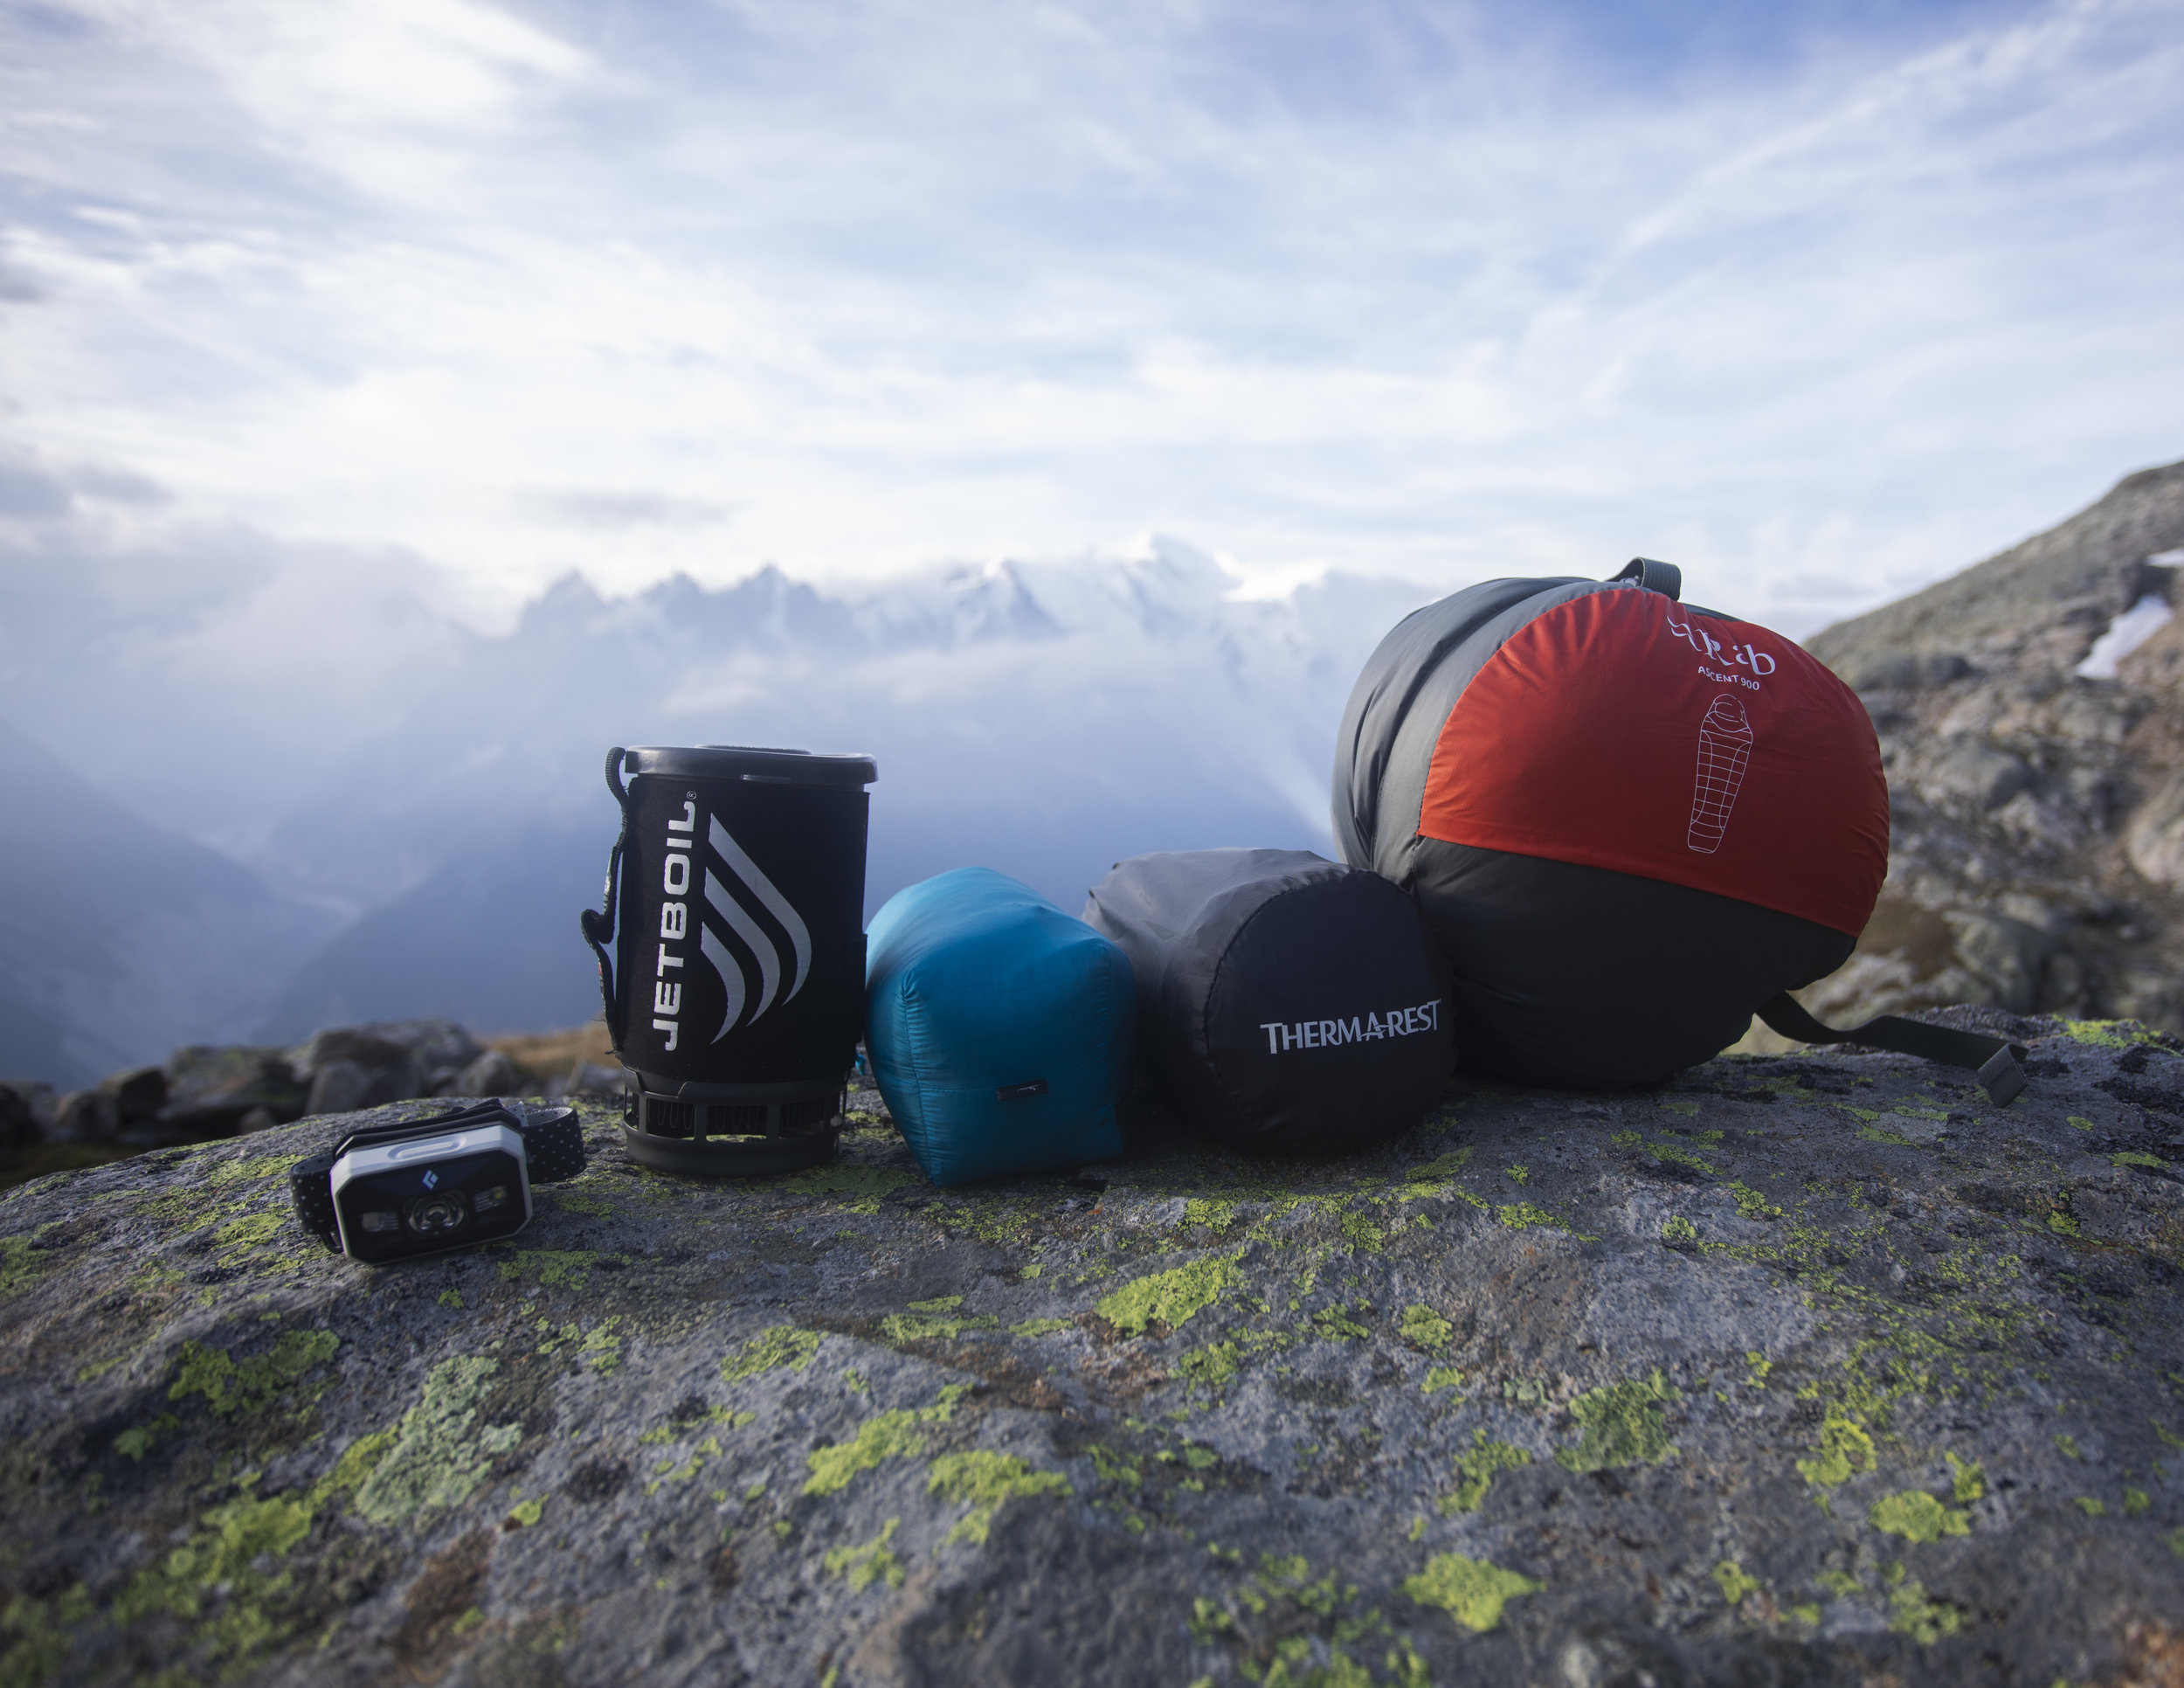 Some of my basic gear with the Mont Blanc behind.  From left to right. Black Diamond Storm headlamp, Jetboil, Arc'teryx Cerium LT Down jacket, Thermarest NeoAir Xtherm, Rab Ascent 900 sleeping bag.